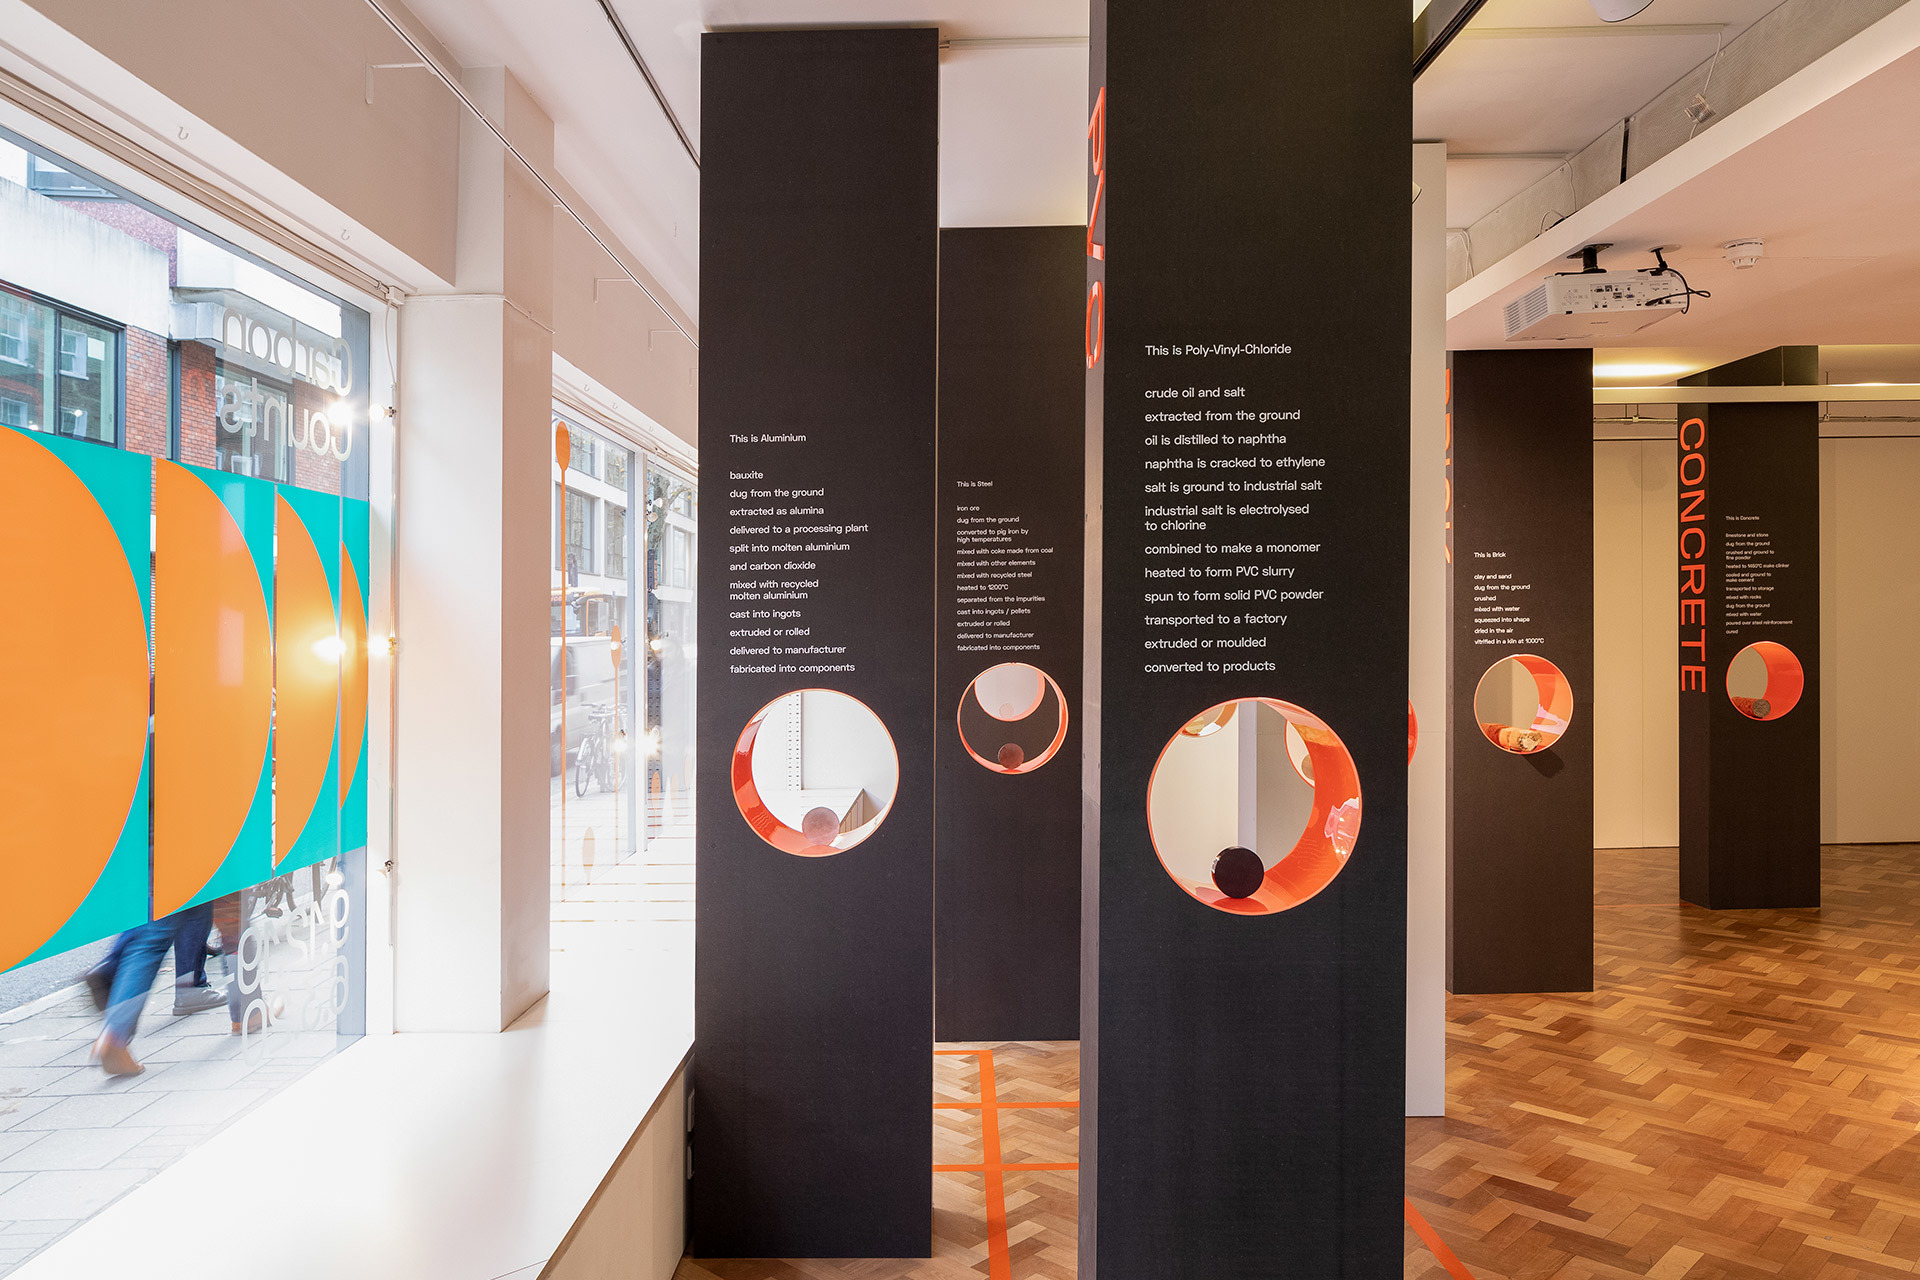 Main View of Carbon Counts Exhibition